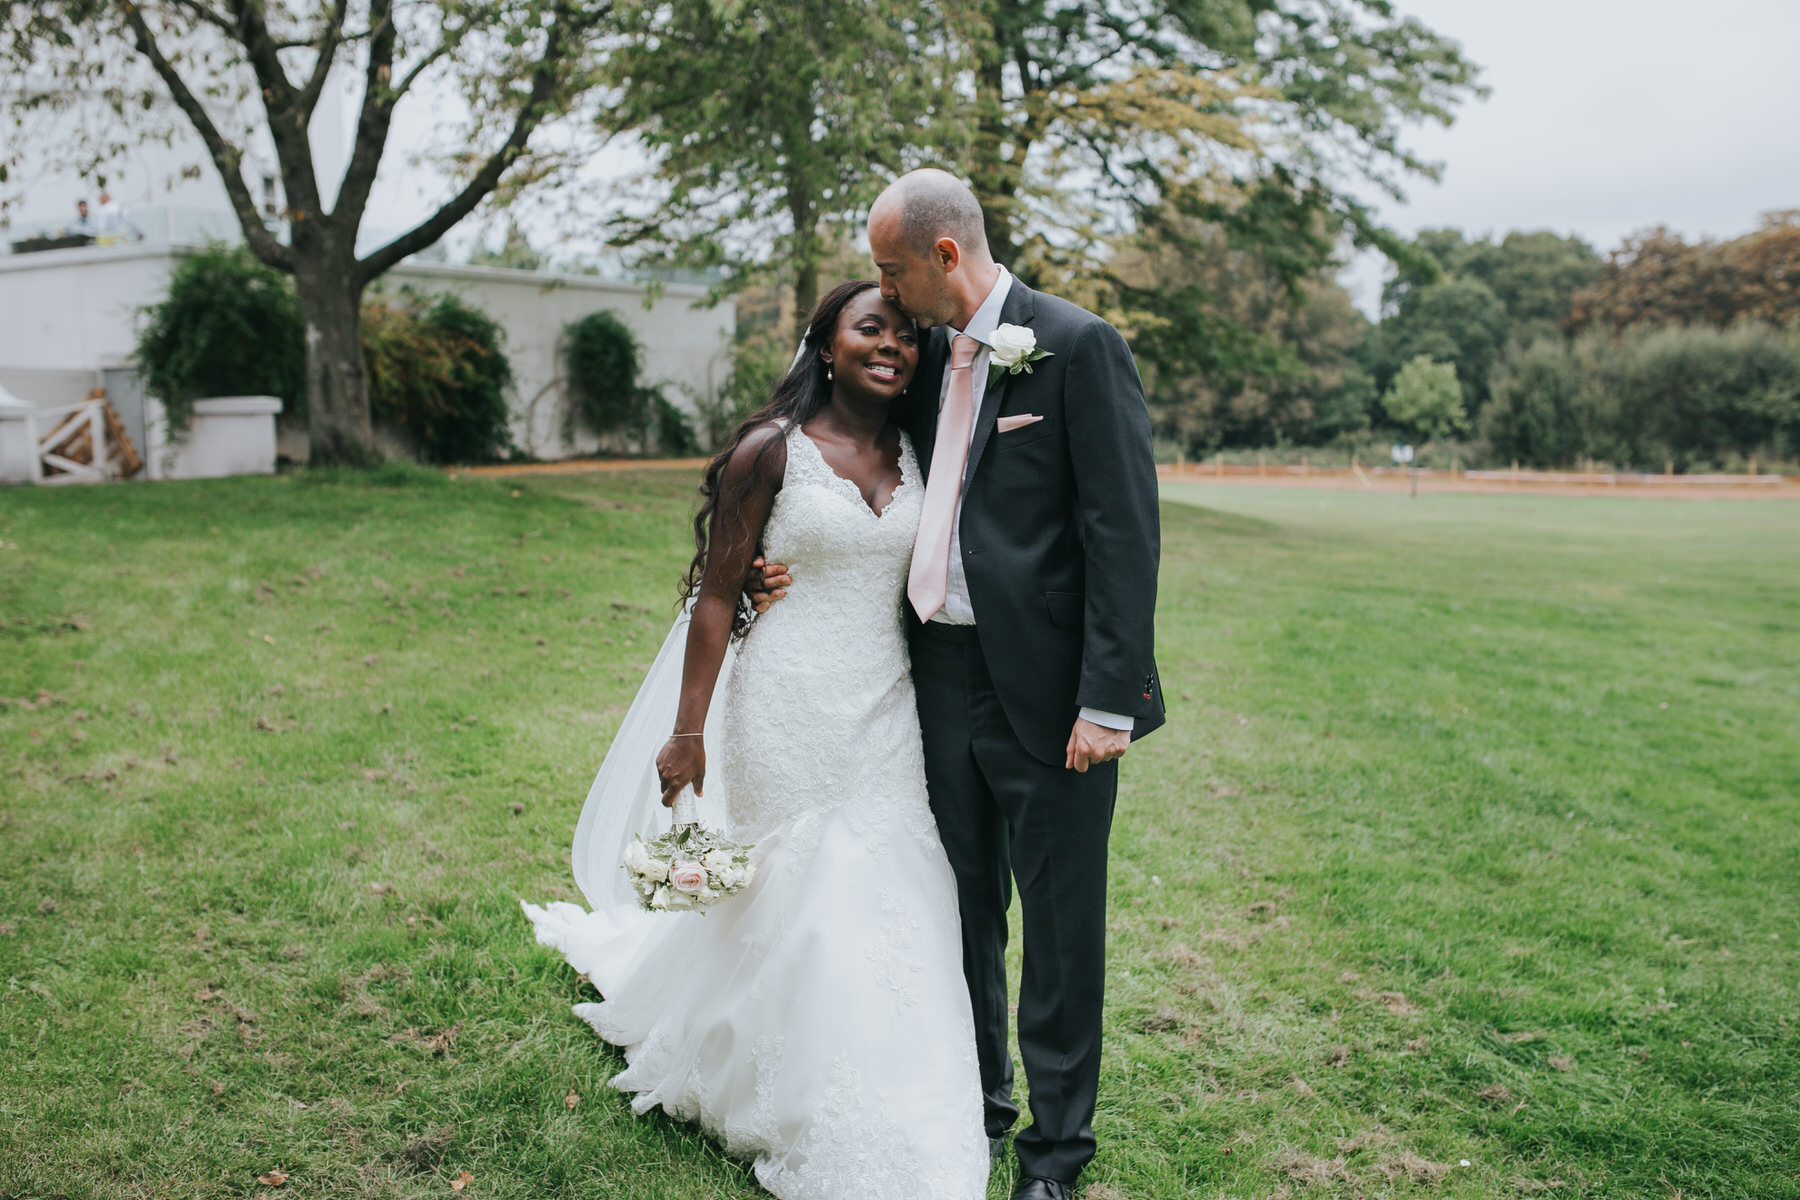 174 just married couple intimate moment during wedding portraits .jpg